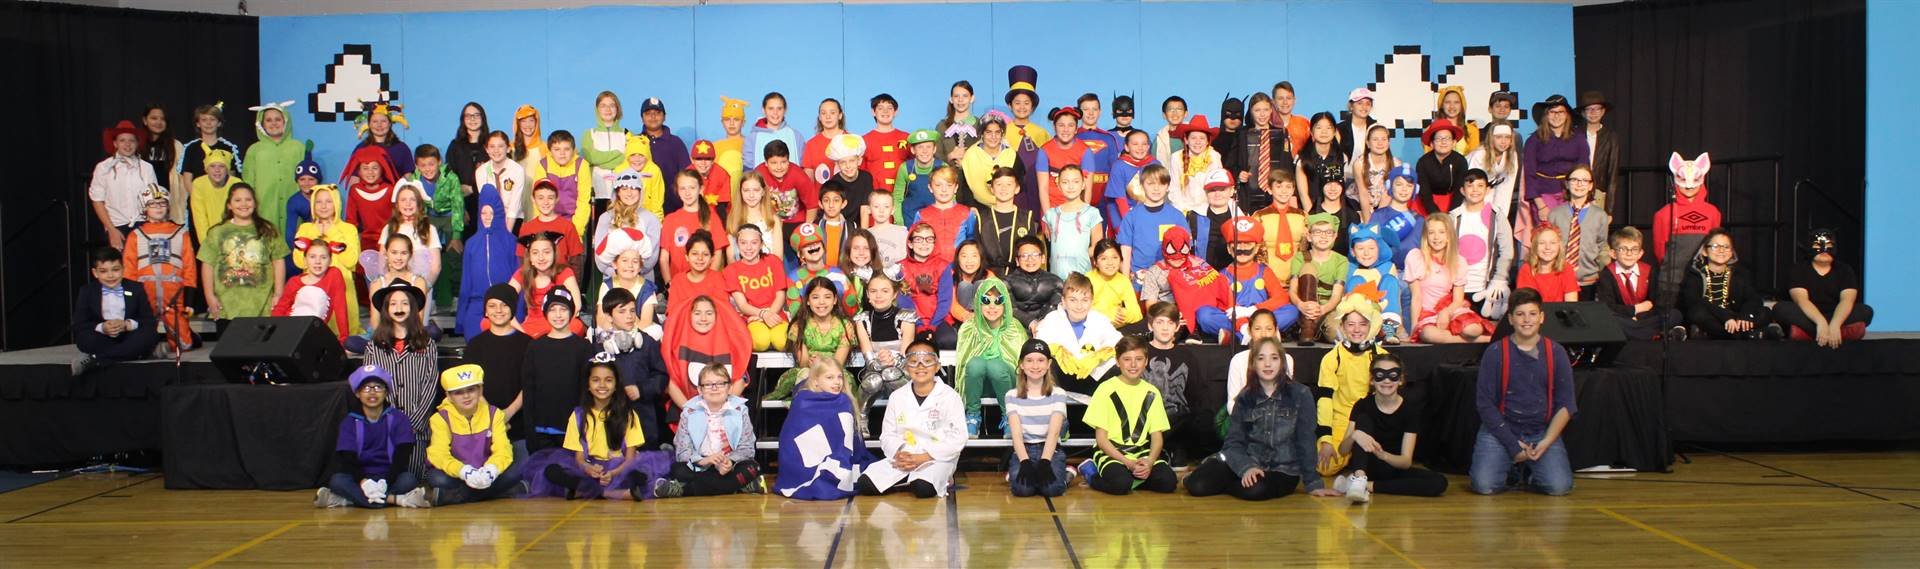 5th Grade Musical Cast Photo